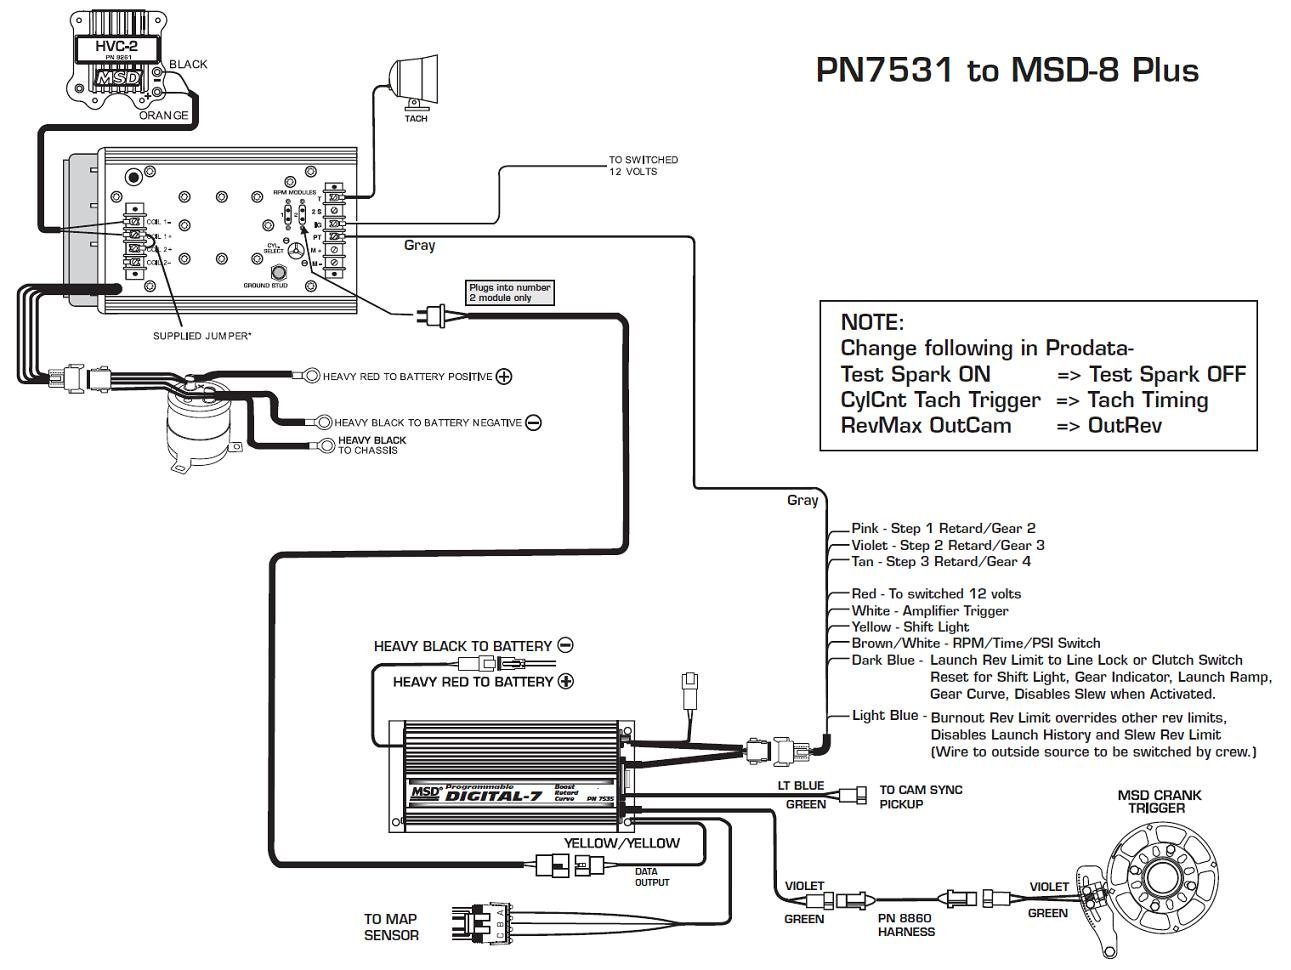 hight resolution of msd digital 7 7531 wiring diagram wiring diagrams scematic rh 4 jessicadonath de msd 7530t msd